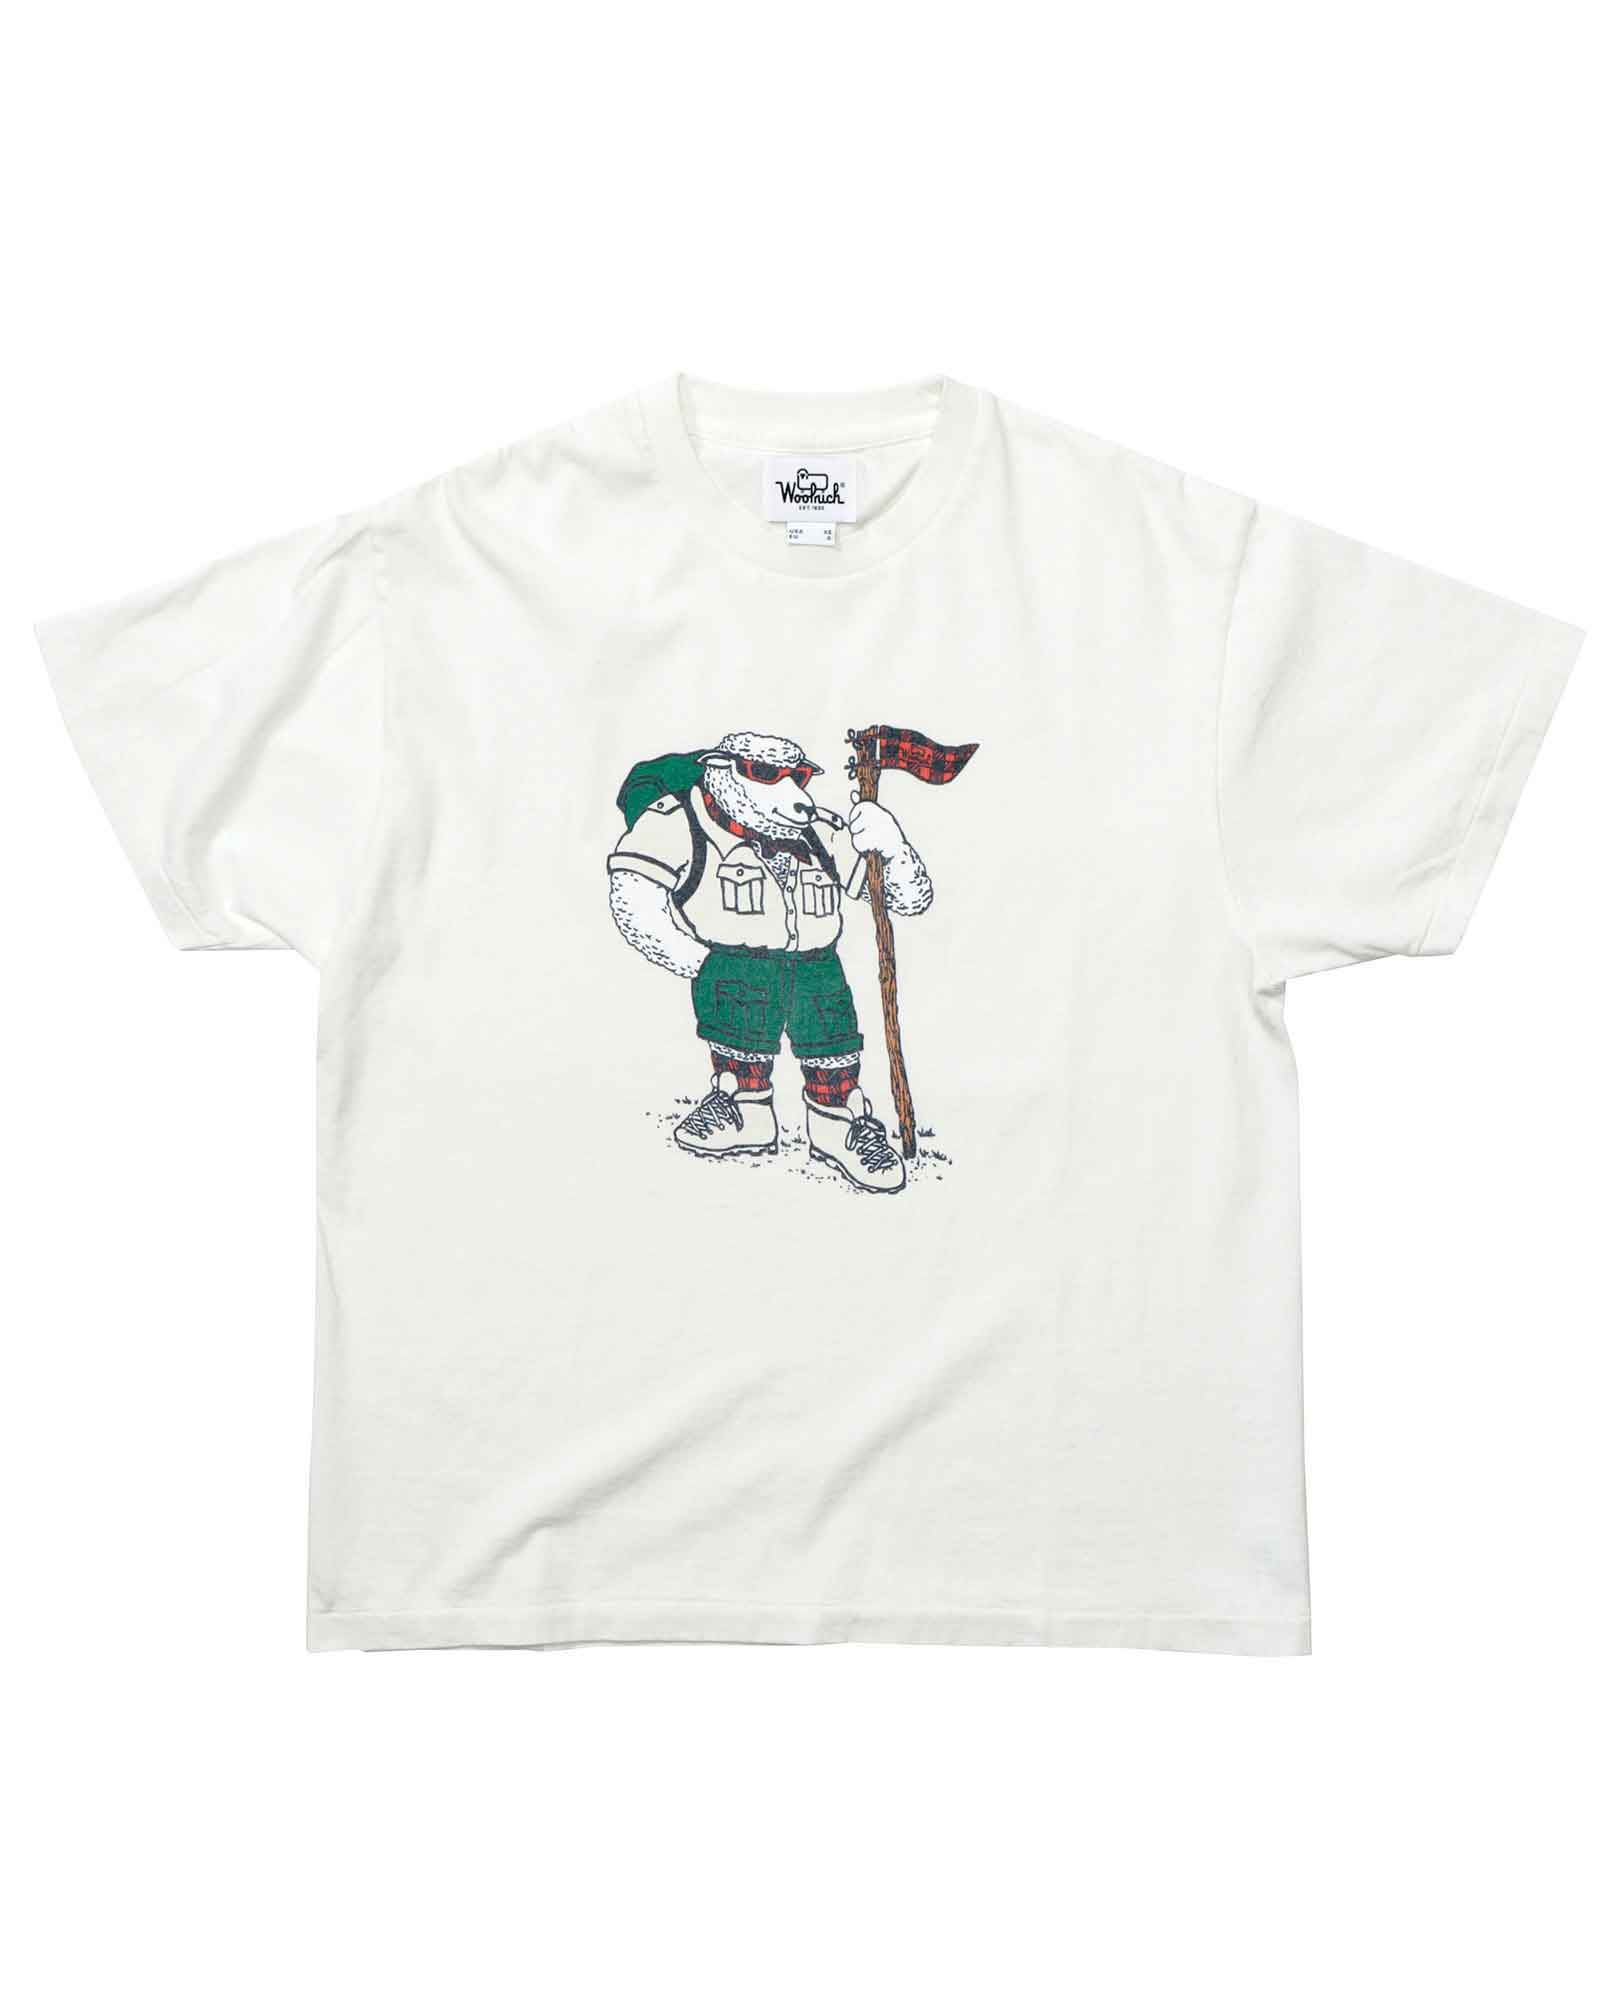 TREKKING SHEEP TEE